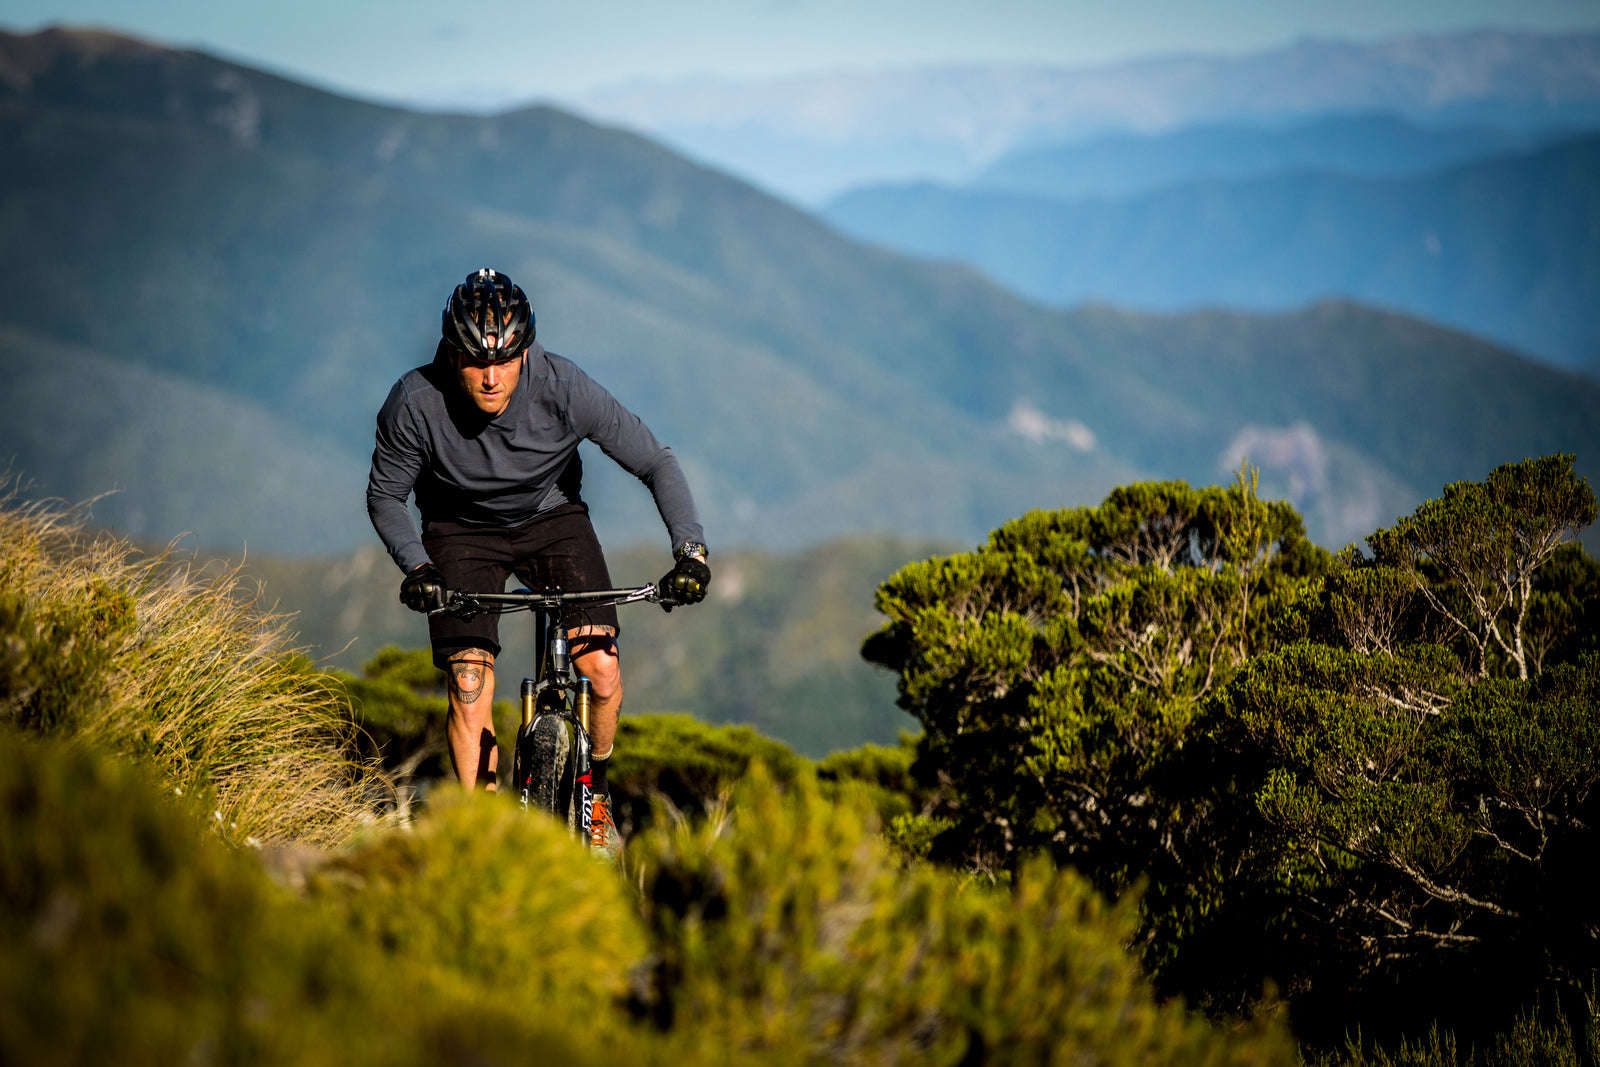 Field Test by Mission Workshop. Country: New Zealand. Featuring : Ride HouseMartin, Sven Martin, Anka Martin, The Radavist, John Watson, Santa Cruz Bicycles, Scott Turner, SRAM, Elayna Caldwell, Tyler Morland, Duncan Riffle, NZ Department of Conservation